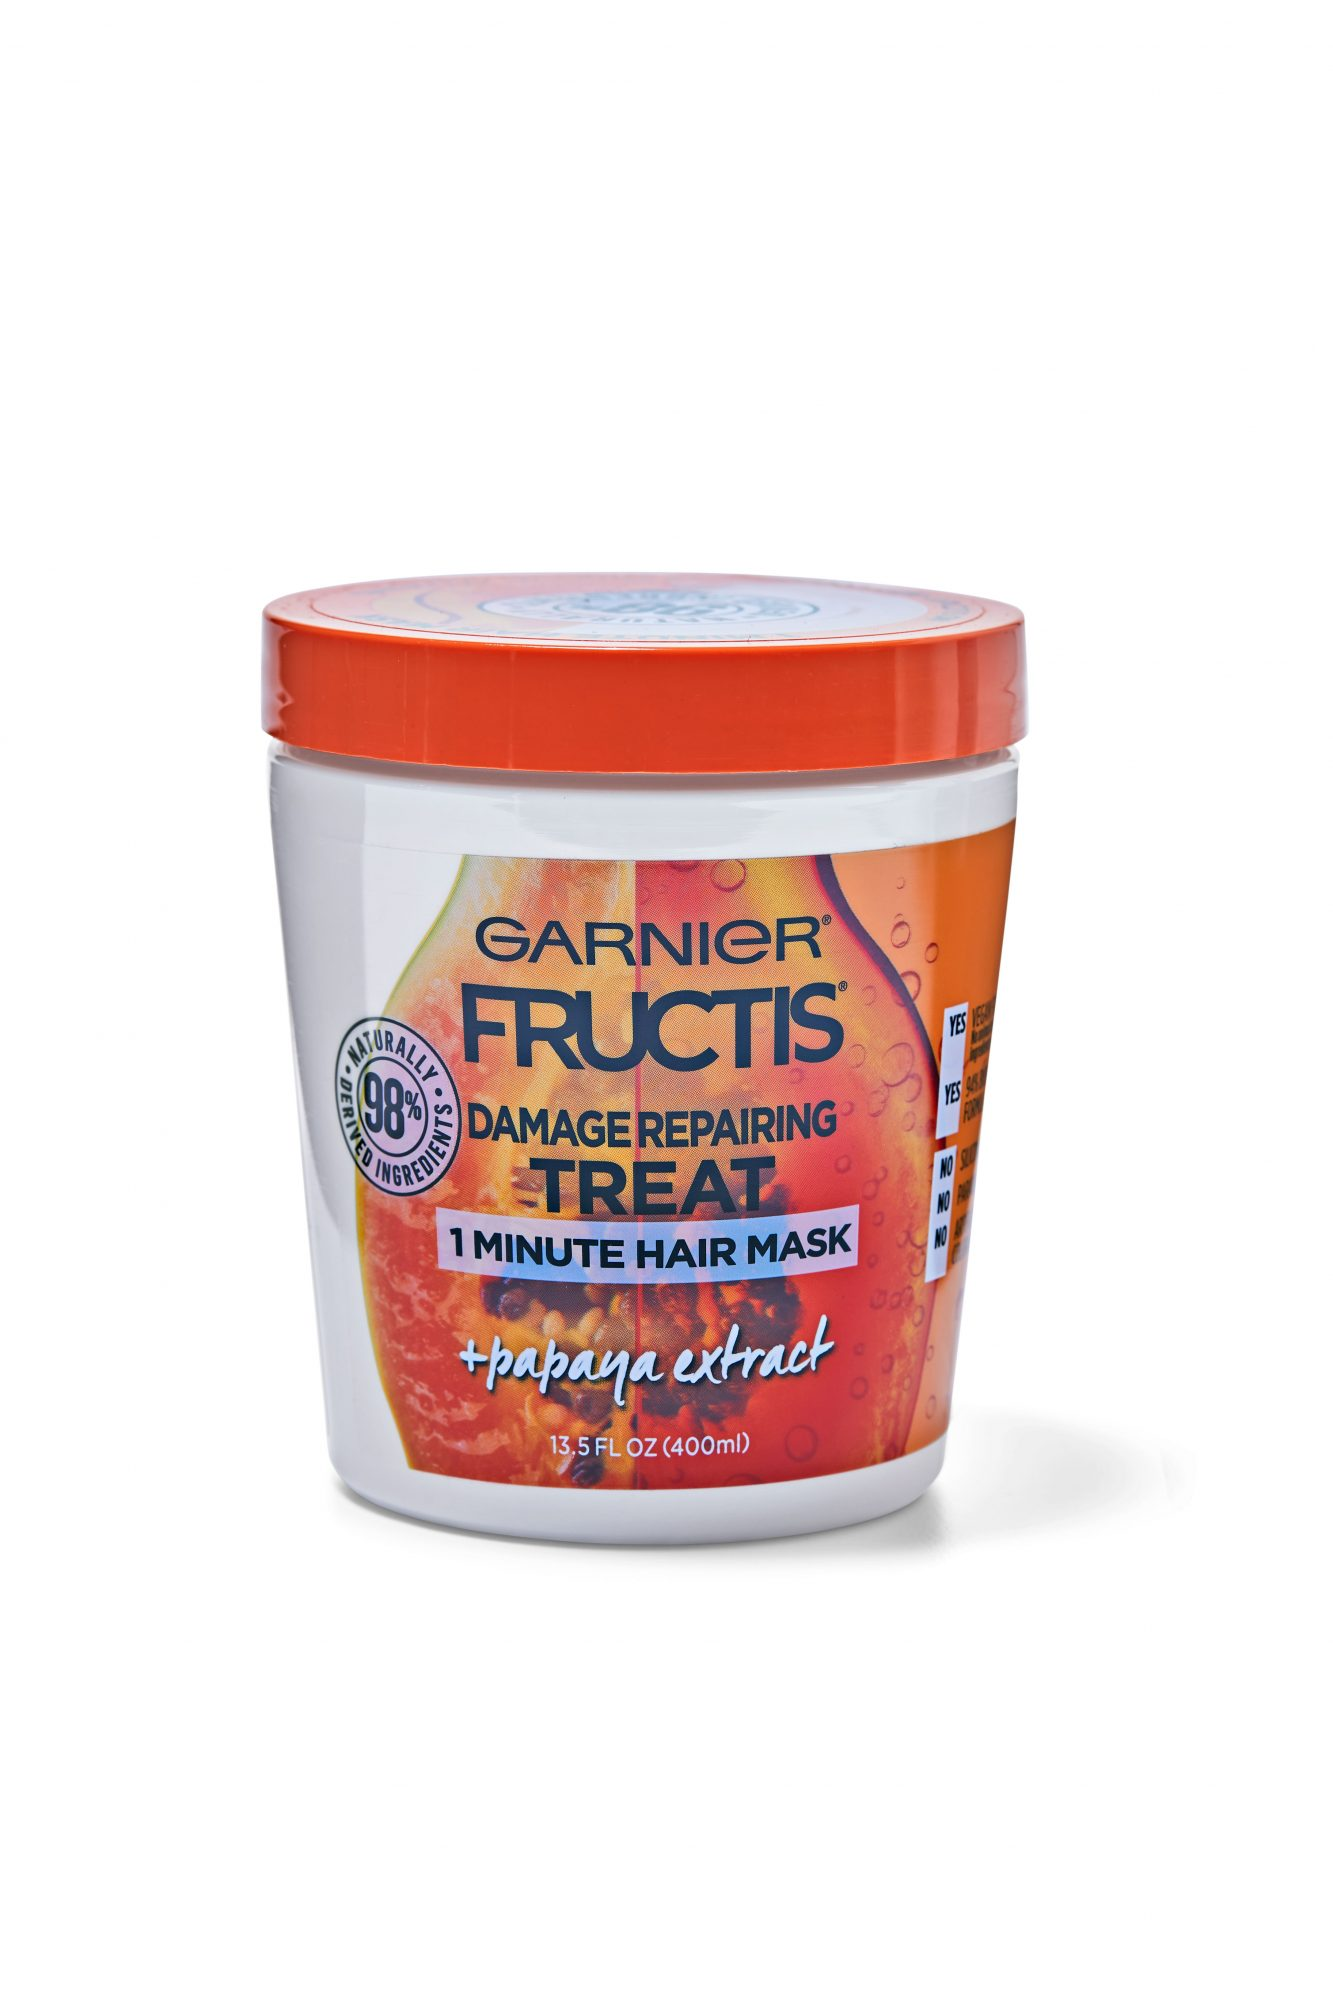 Garnier Fructis Damage Repairing Treat 1 Minute Hair Mask + Papaya Extract